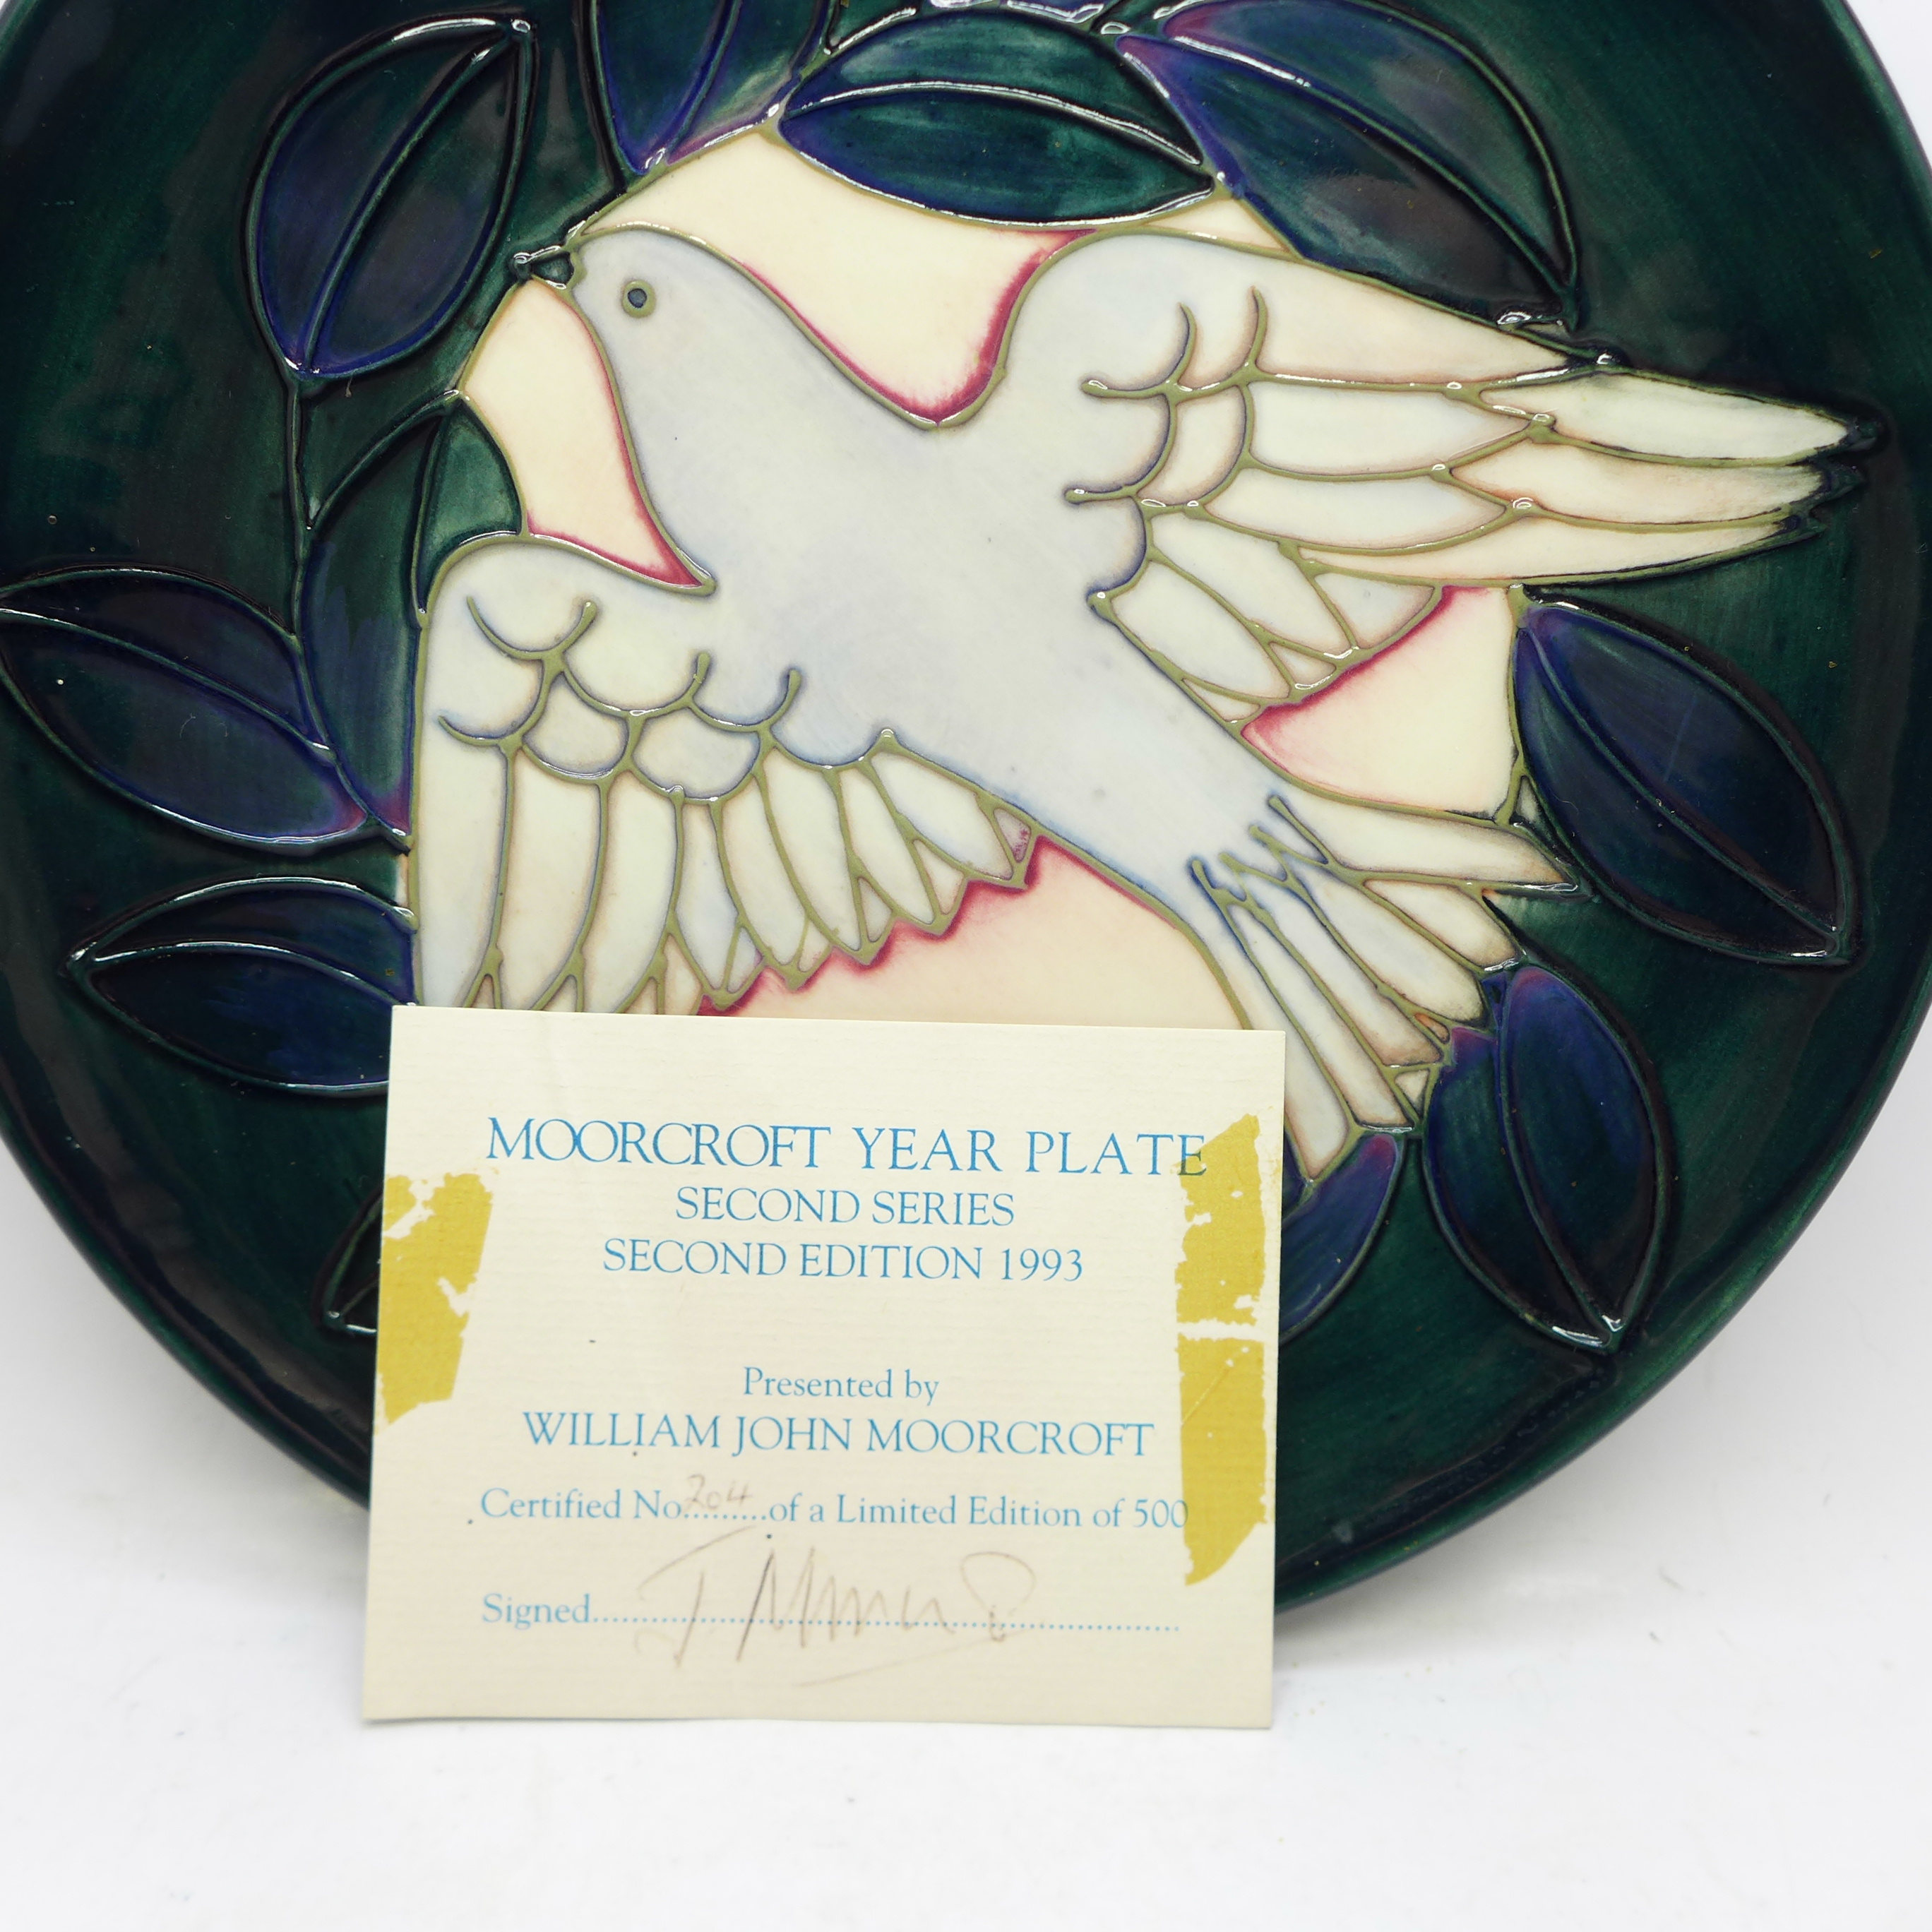 A Moorcroft Year Plate, Second Series Second Edition 1993, dove design, 204/500, with box and signed - Image 5 of 6